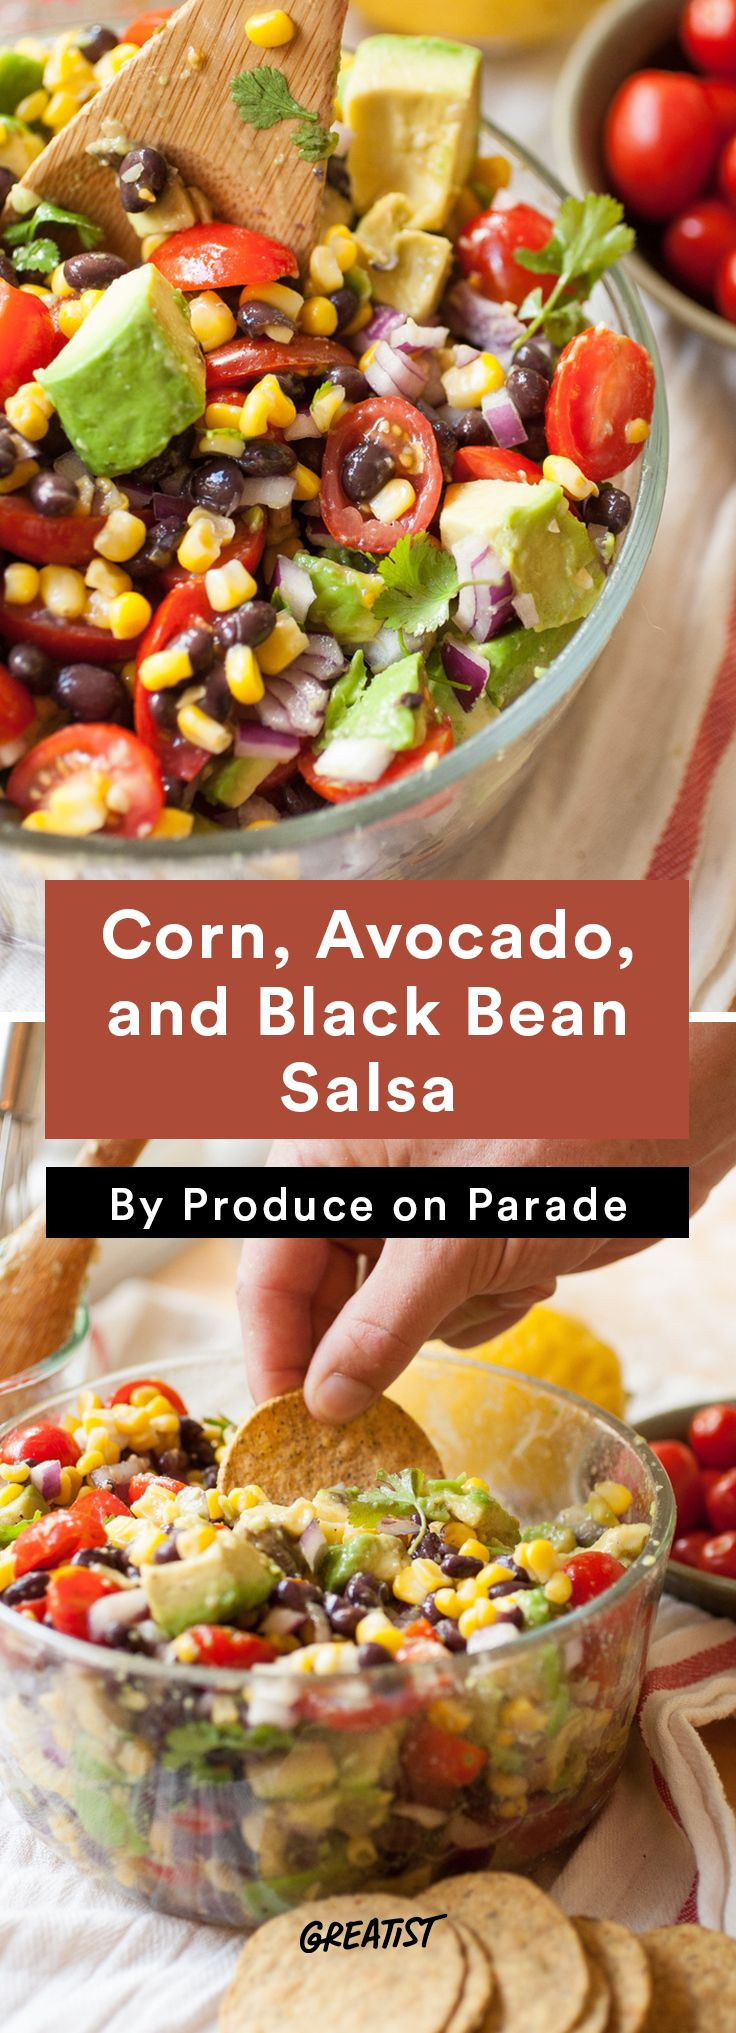 4. Corn, Avocado, and Black Bean Salsa #healthy #dip #recipes http://greatist.com/eat/dip-recipes-way-better-than-the-classics